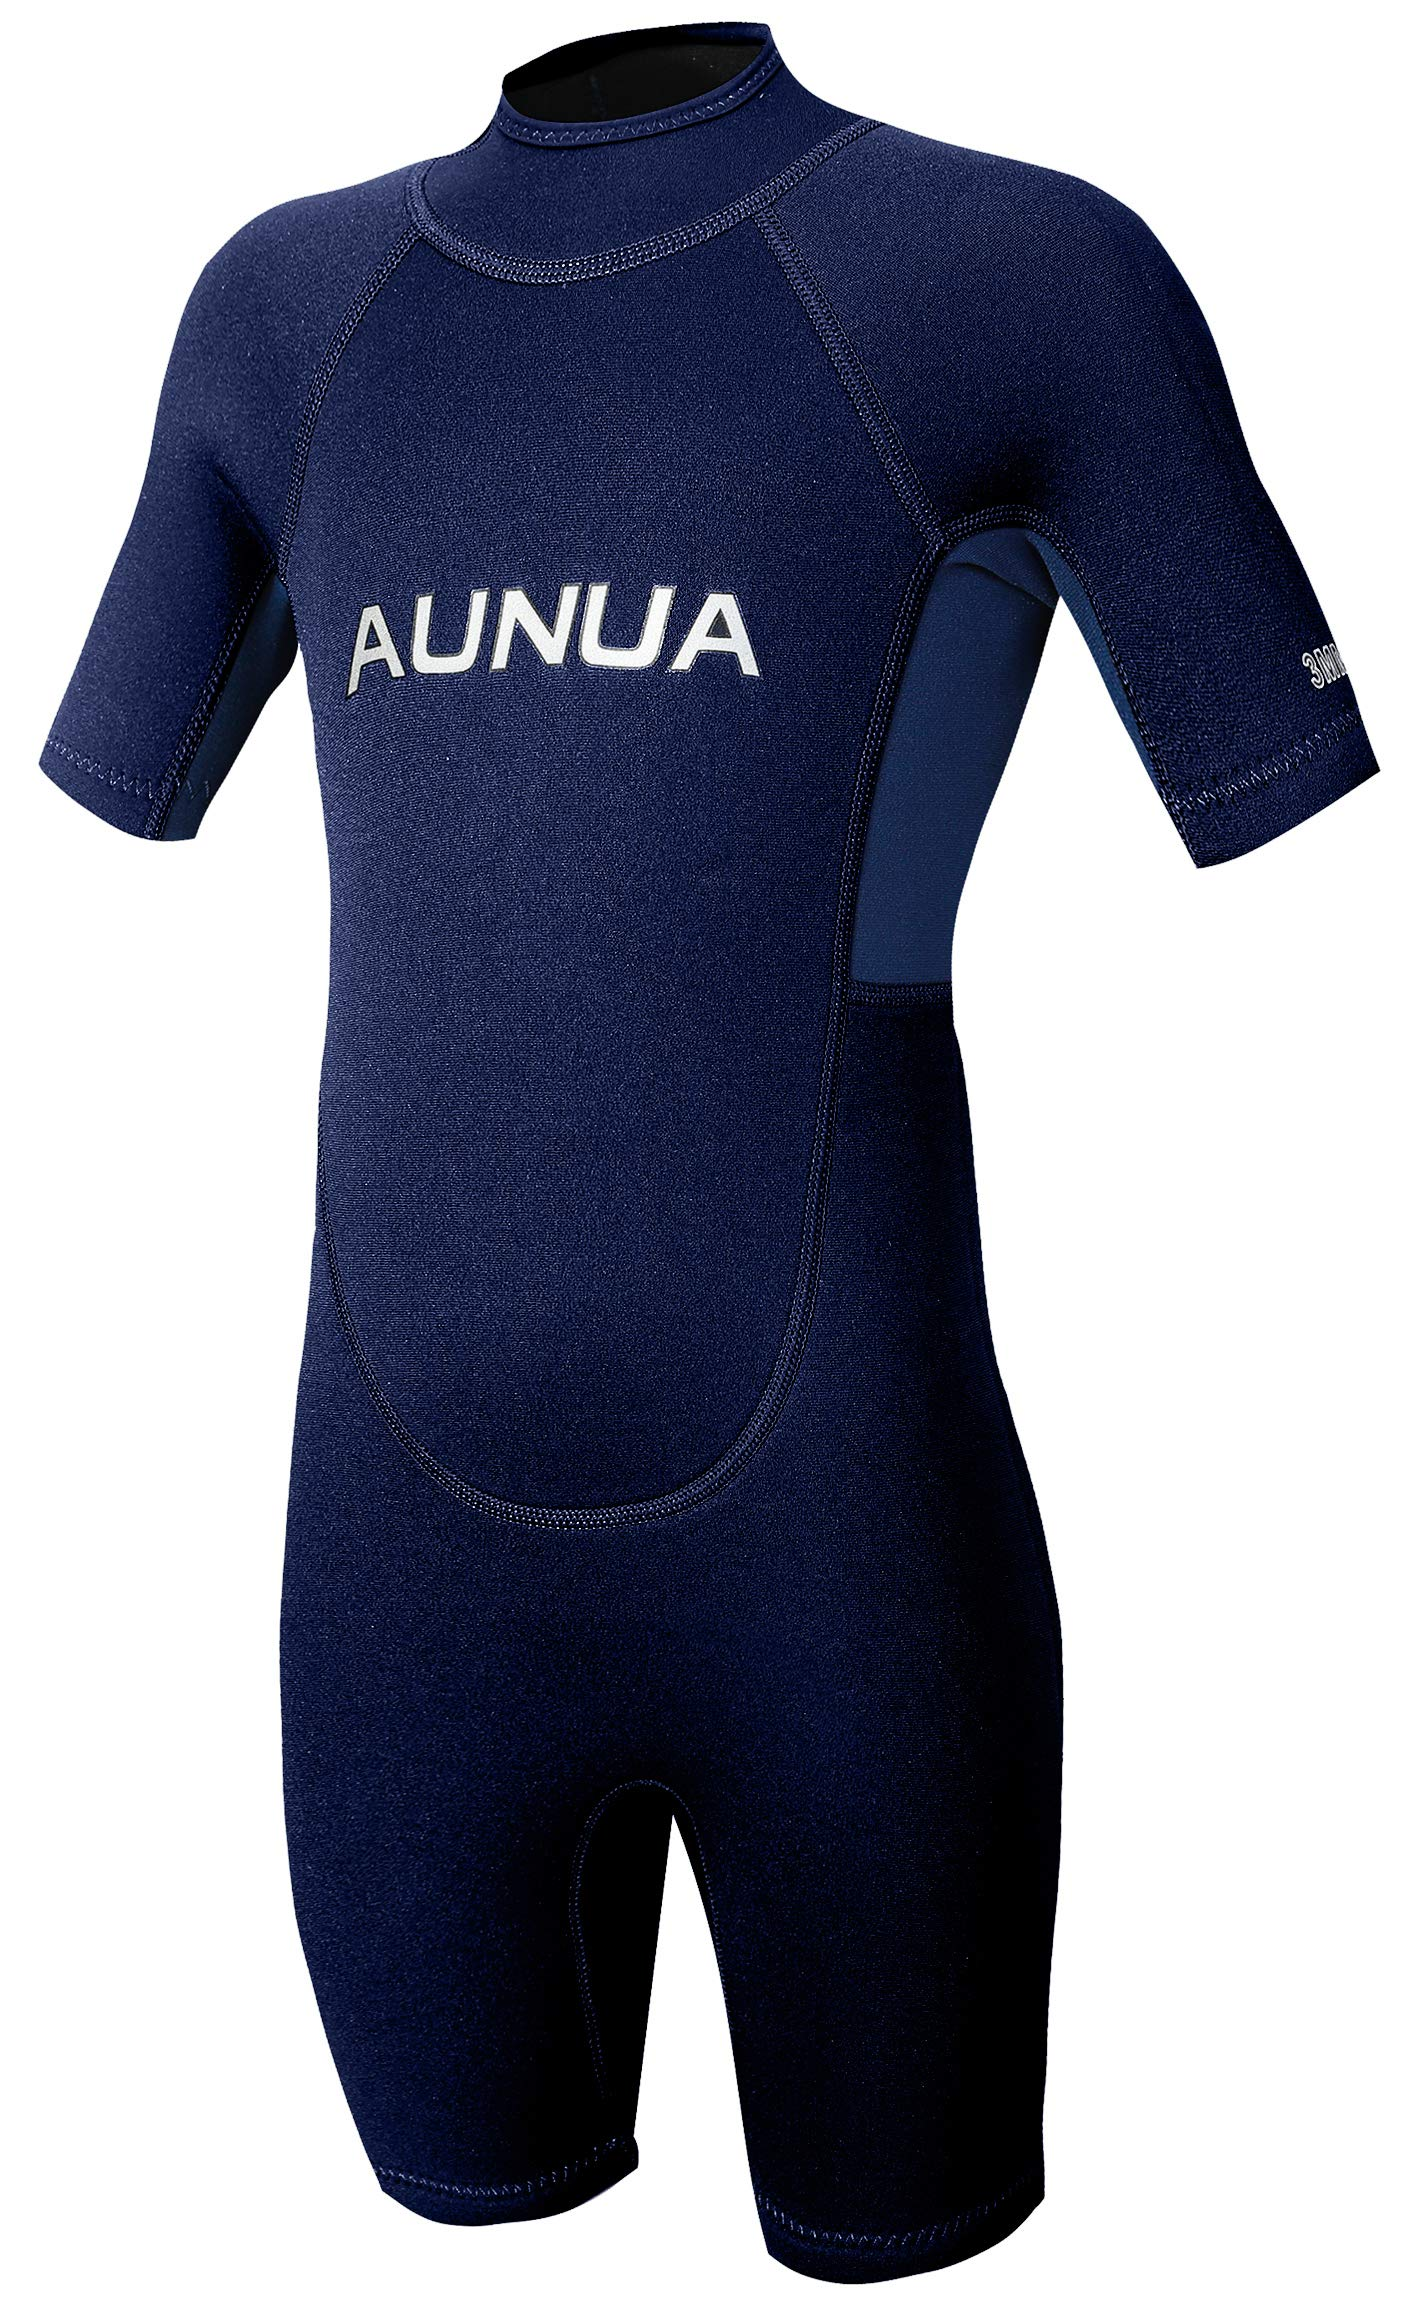 Aunua Children's 3mm Youth Swimming Suit Shorty Wetsuits Neoprene for Kids Keep Warm(7035 NavyBlue 4) by Aunua